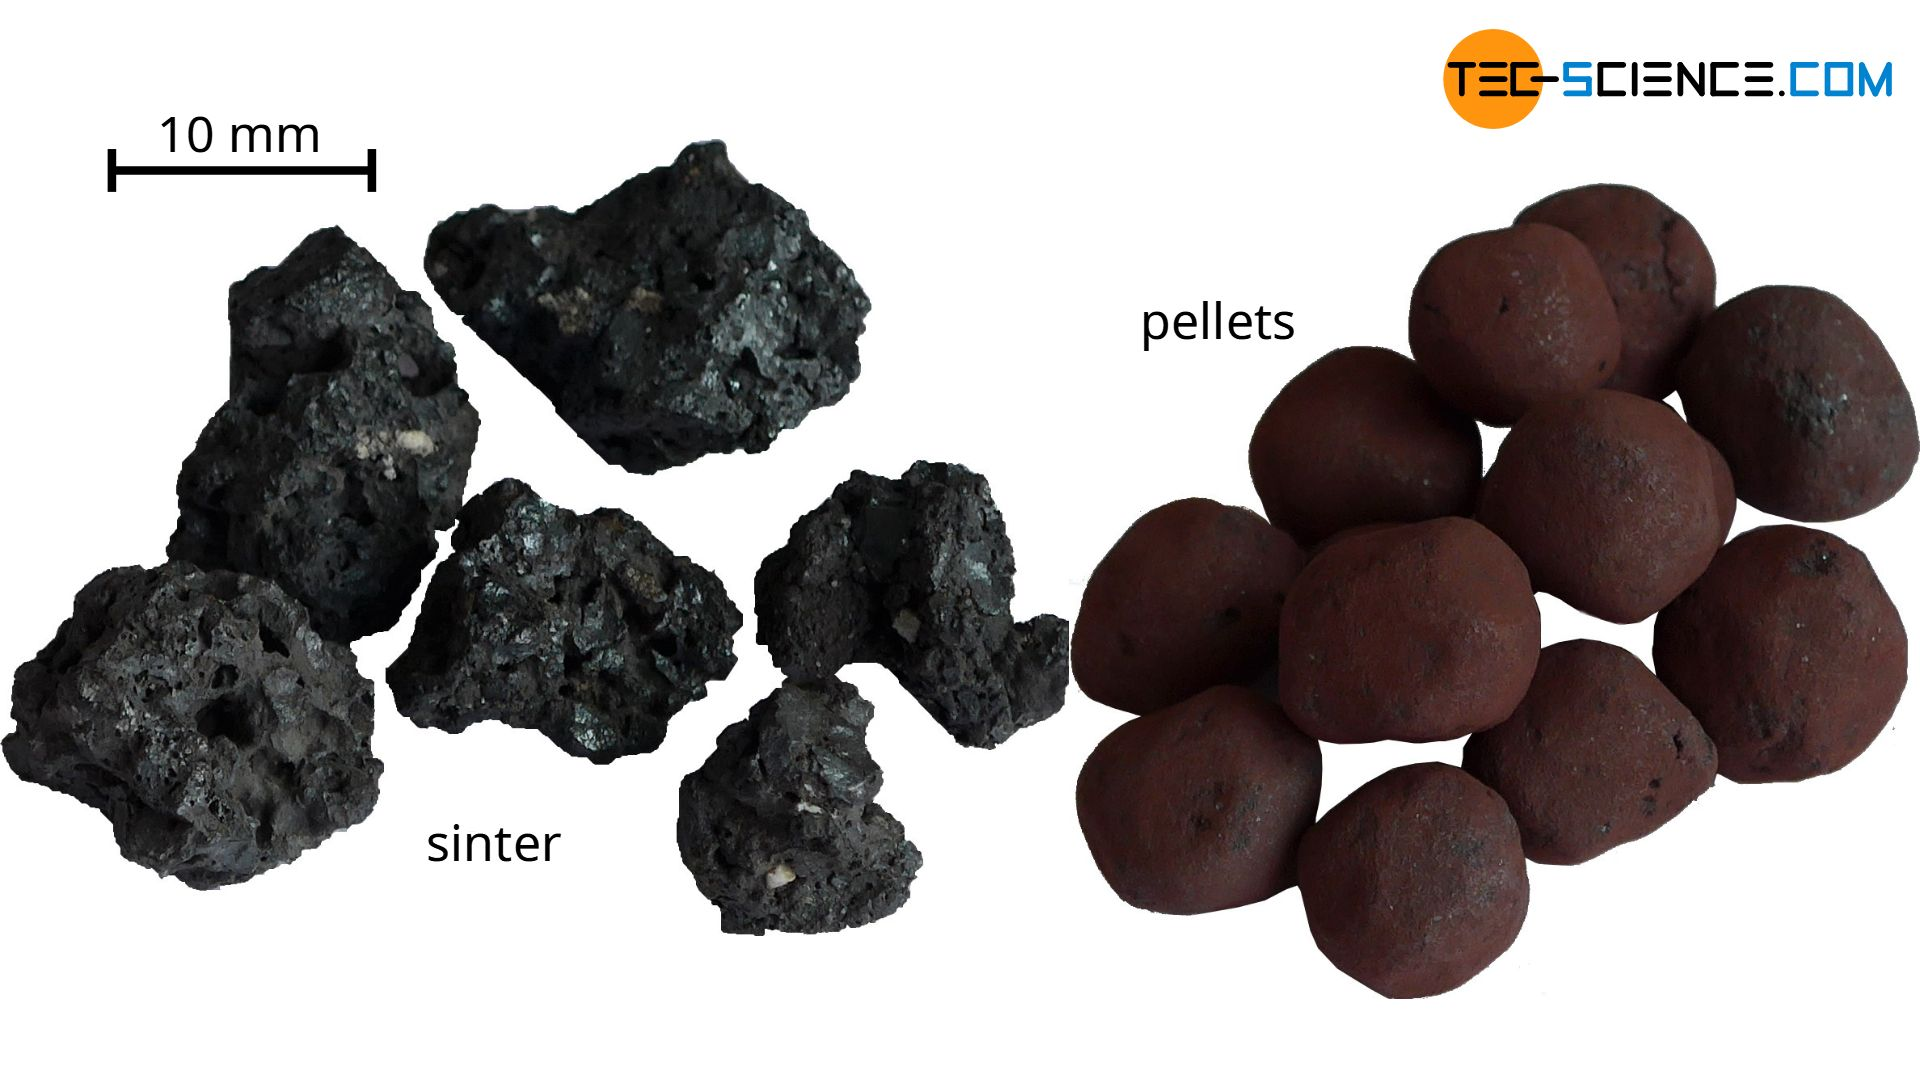 Processing of iron ores by sintering and pelletizing